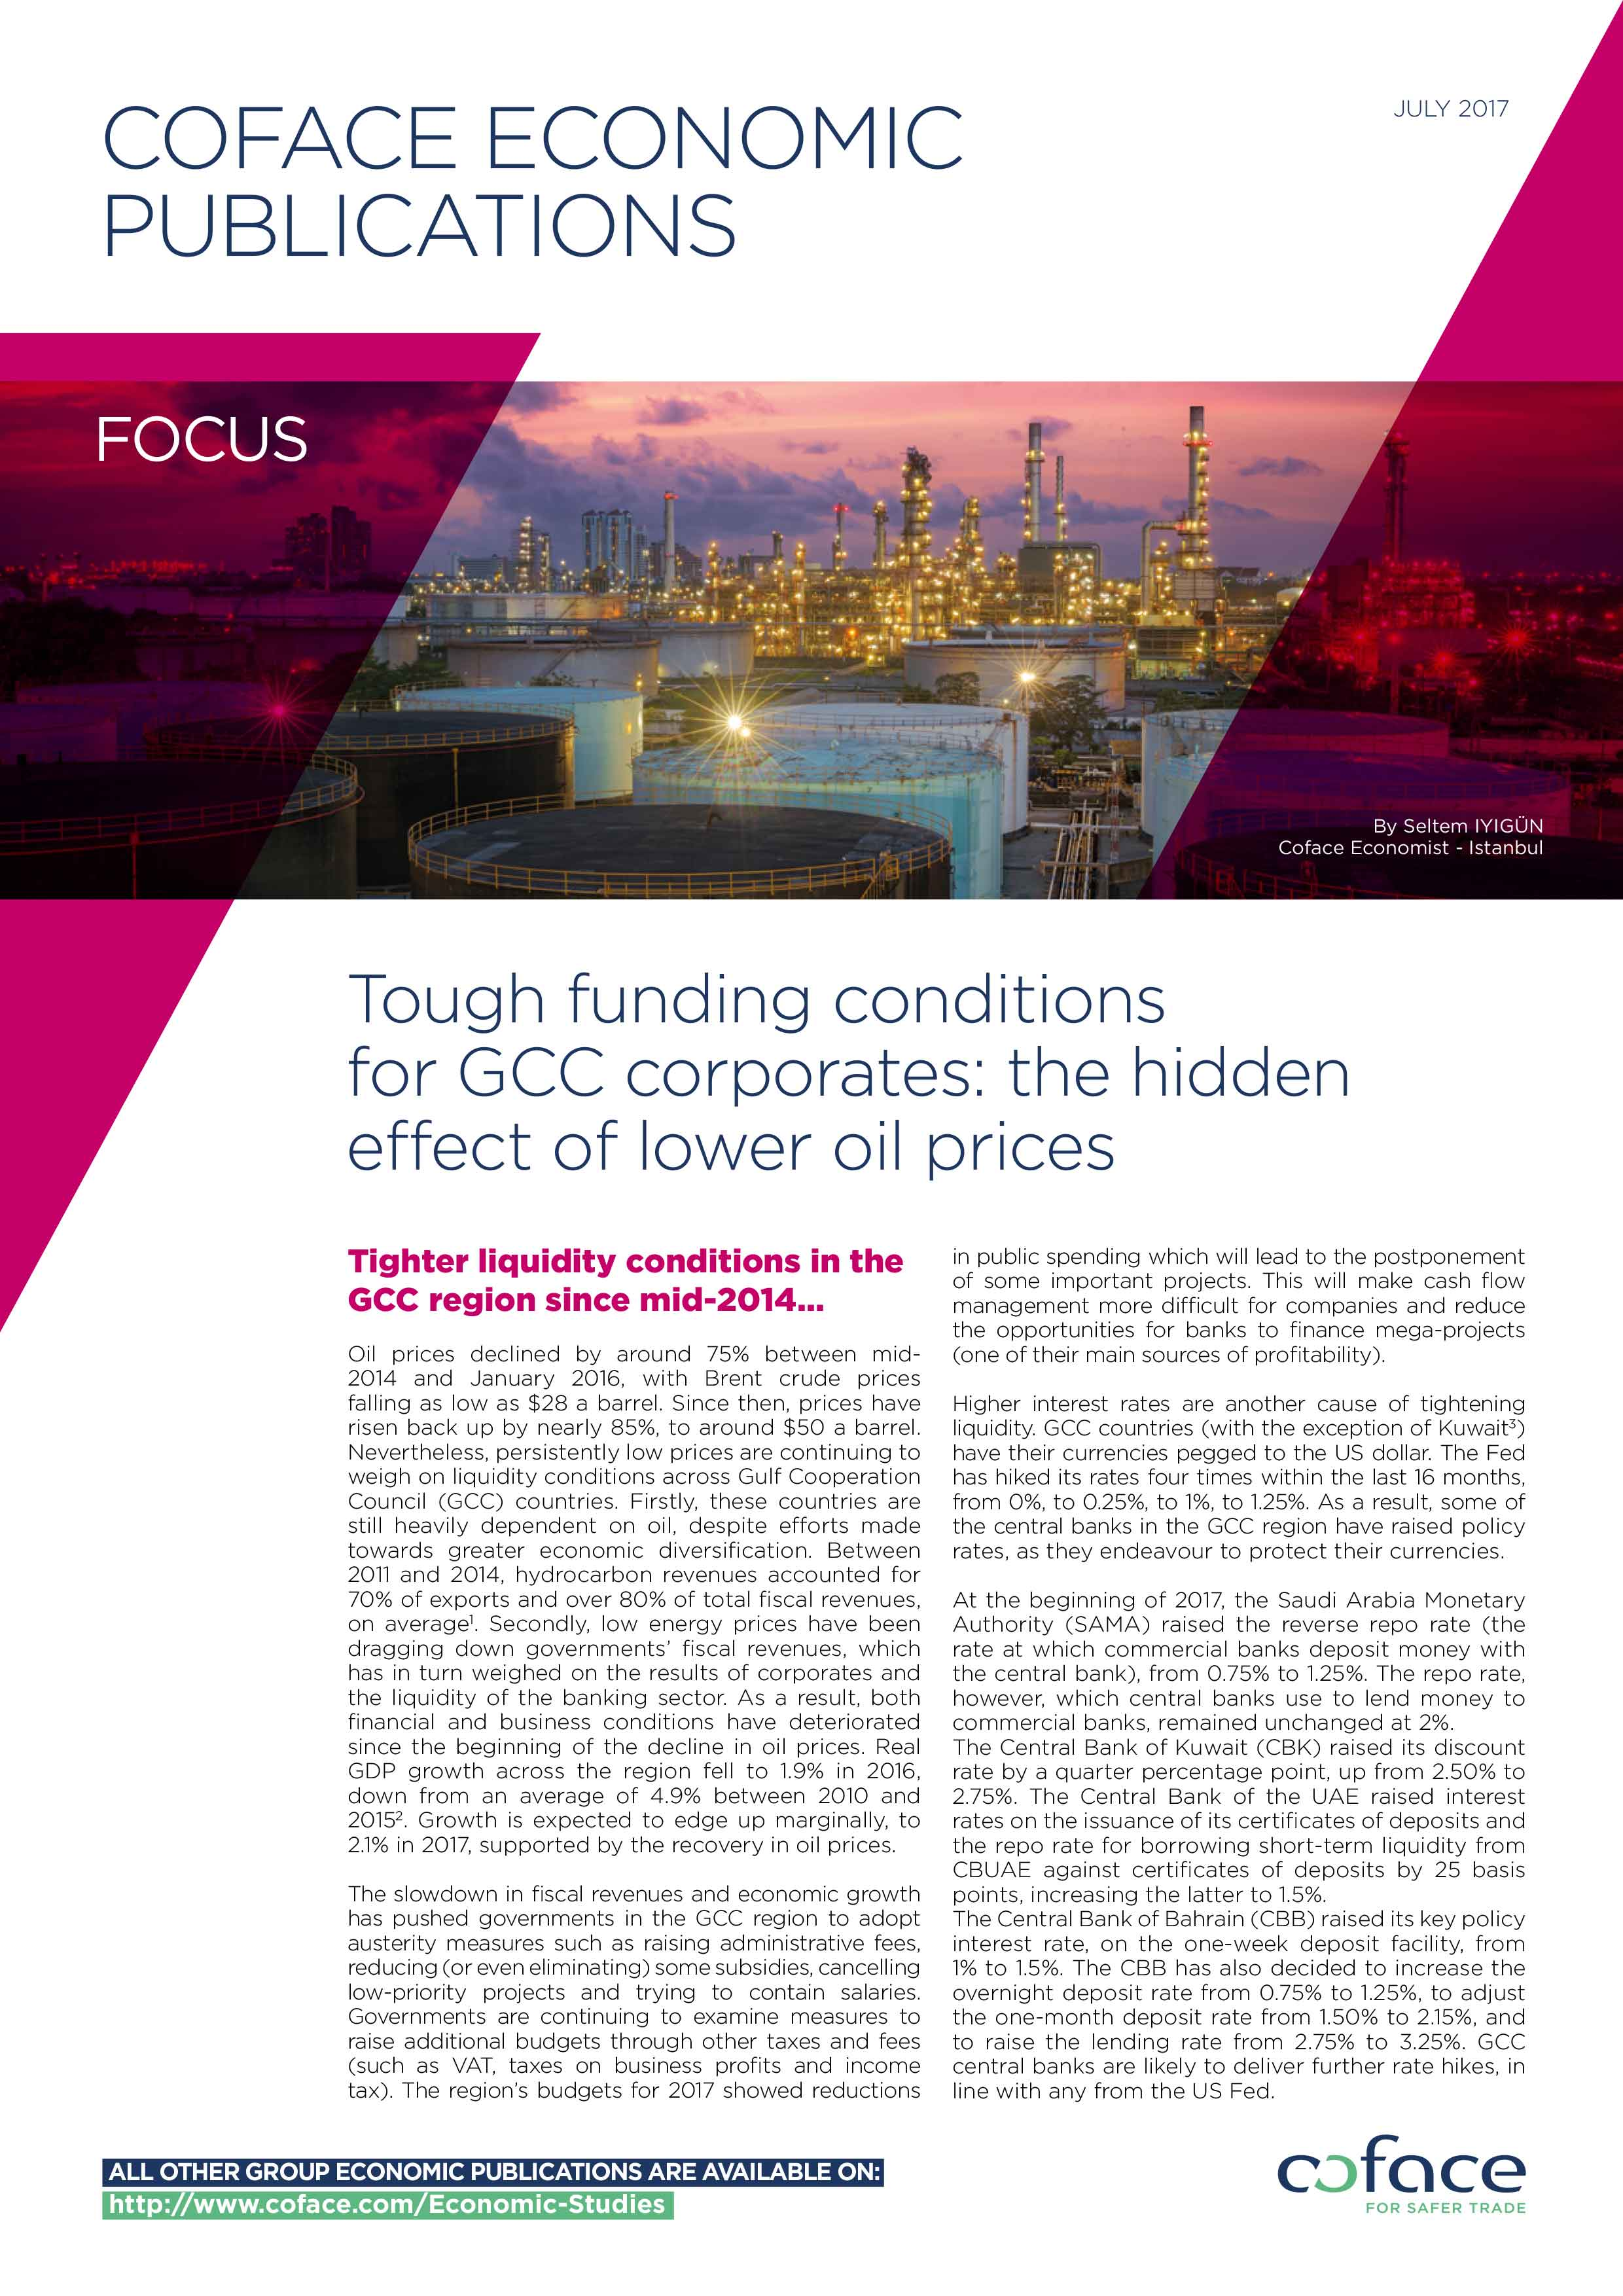 Tough funding conditions for GCC corporates: the hidden effect of lower oil prices